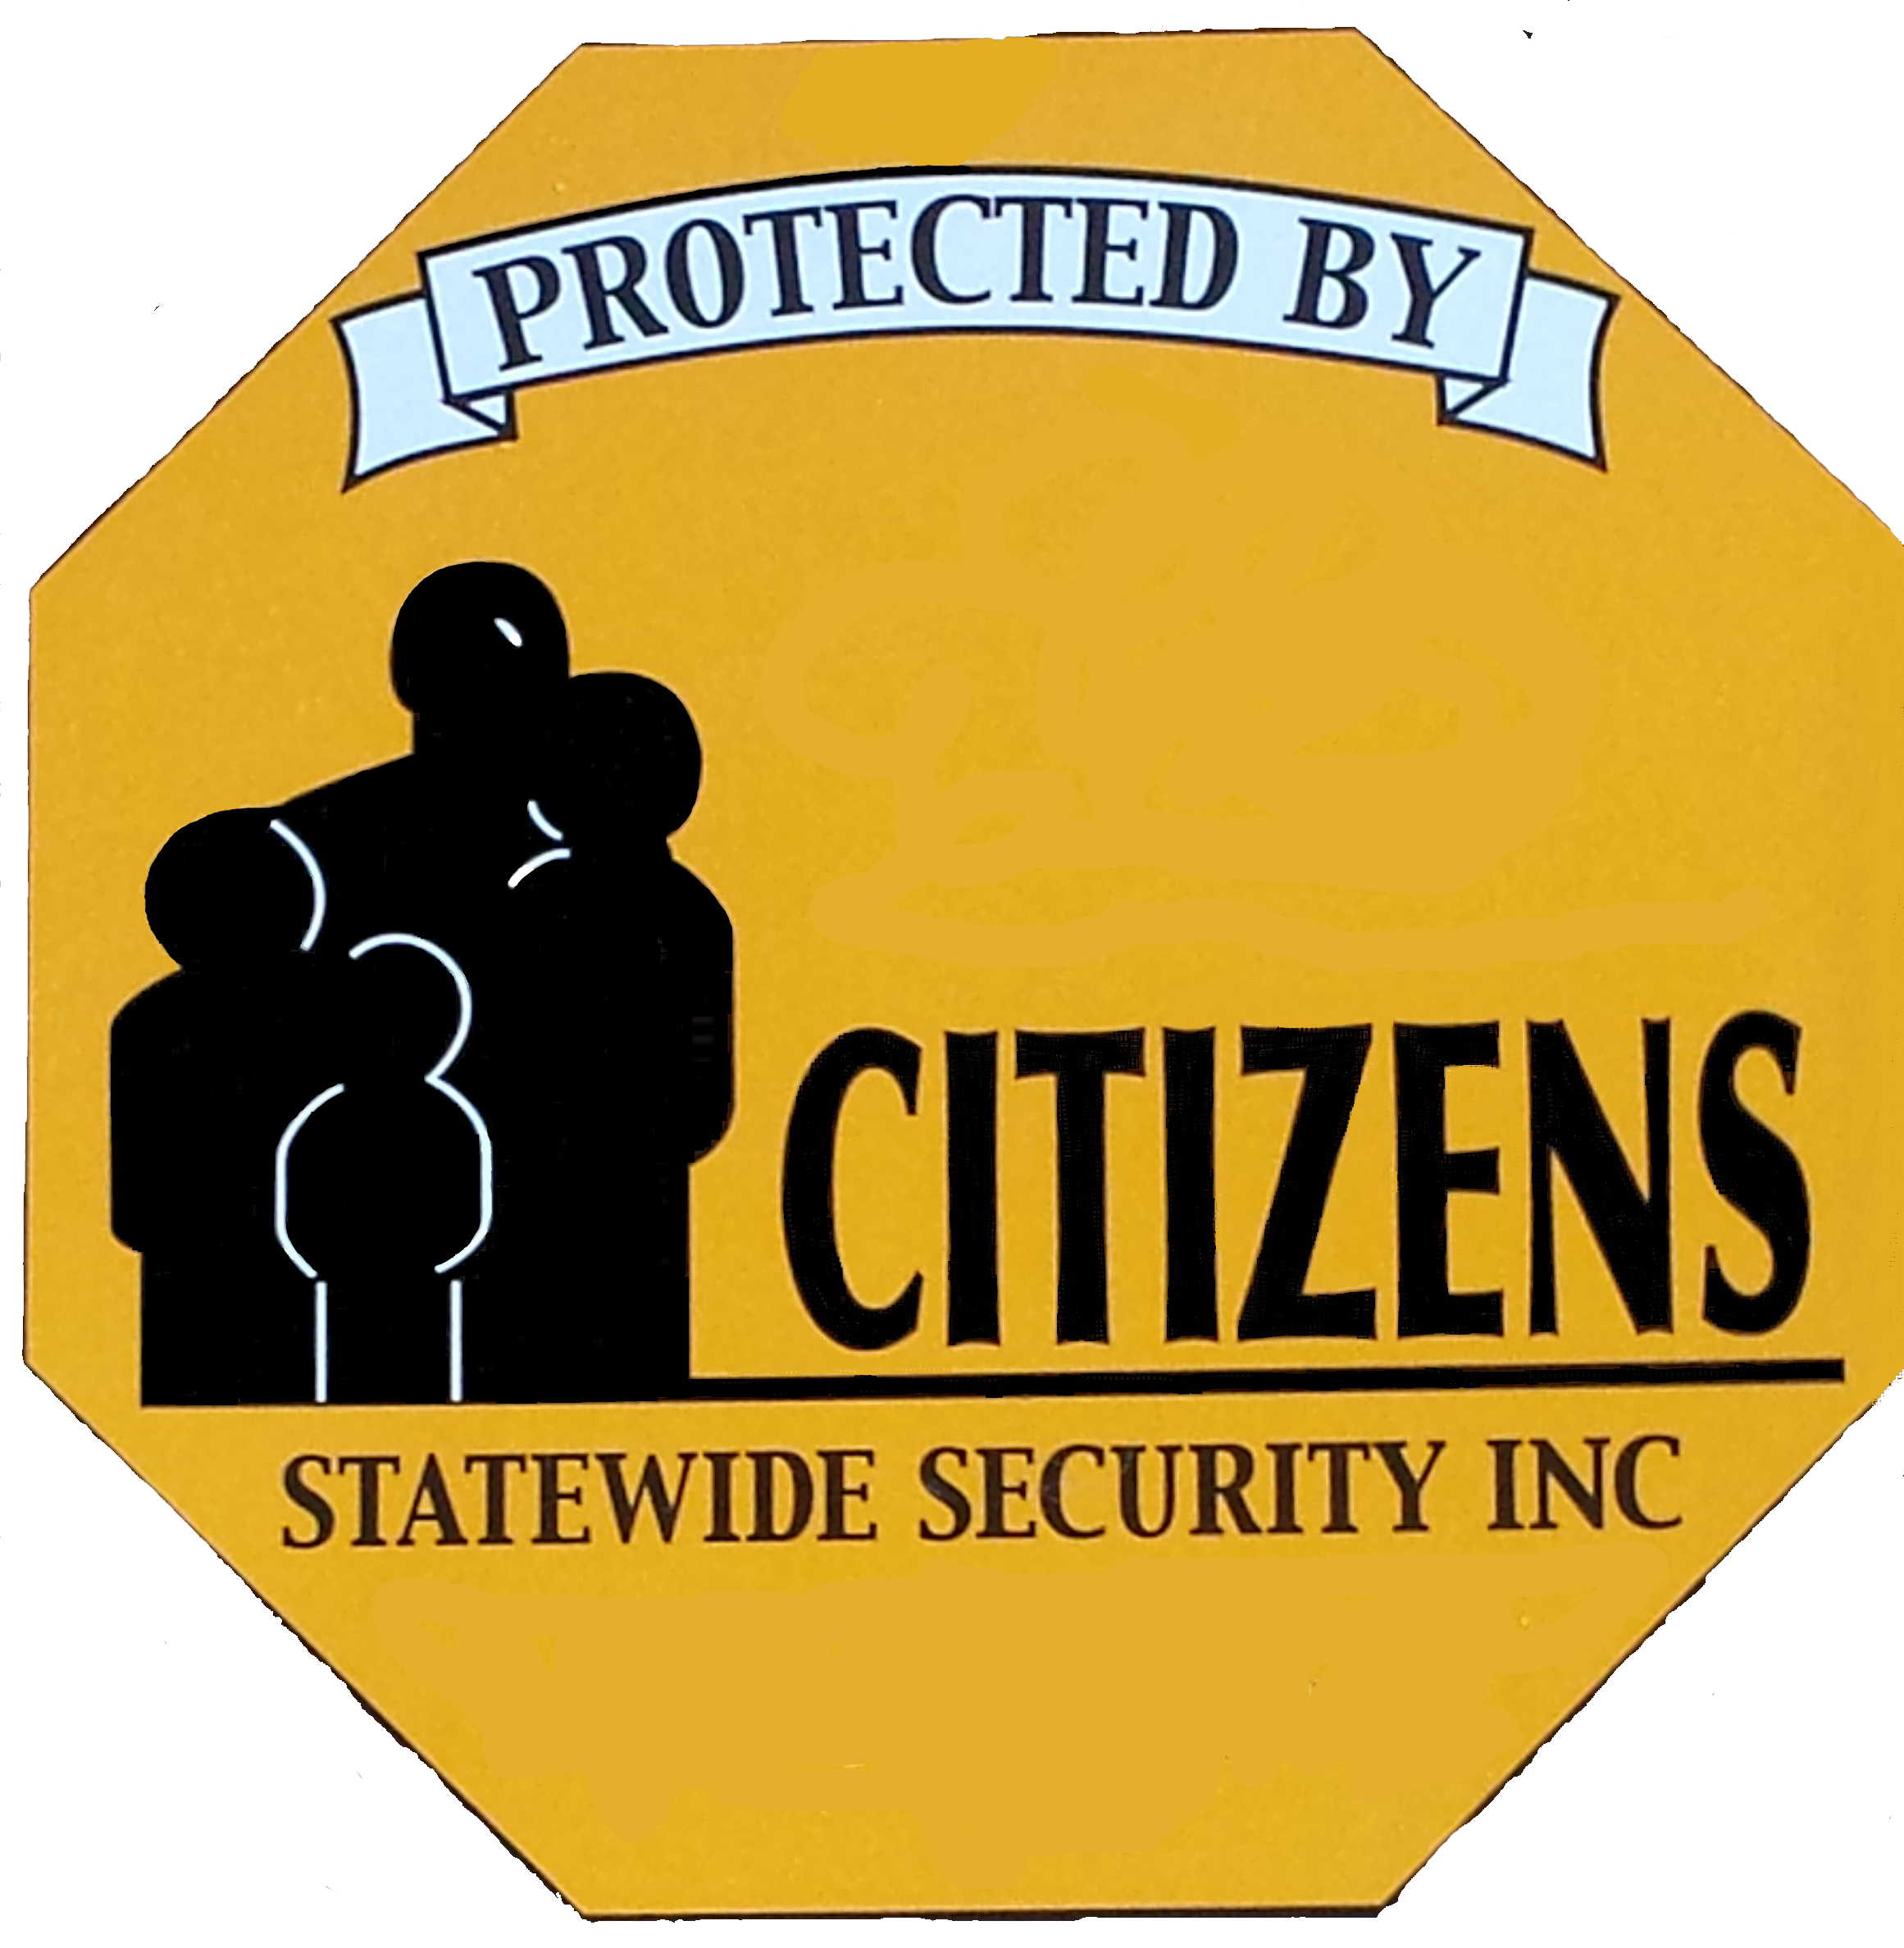 Citizens Statewide Security, Inc.